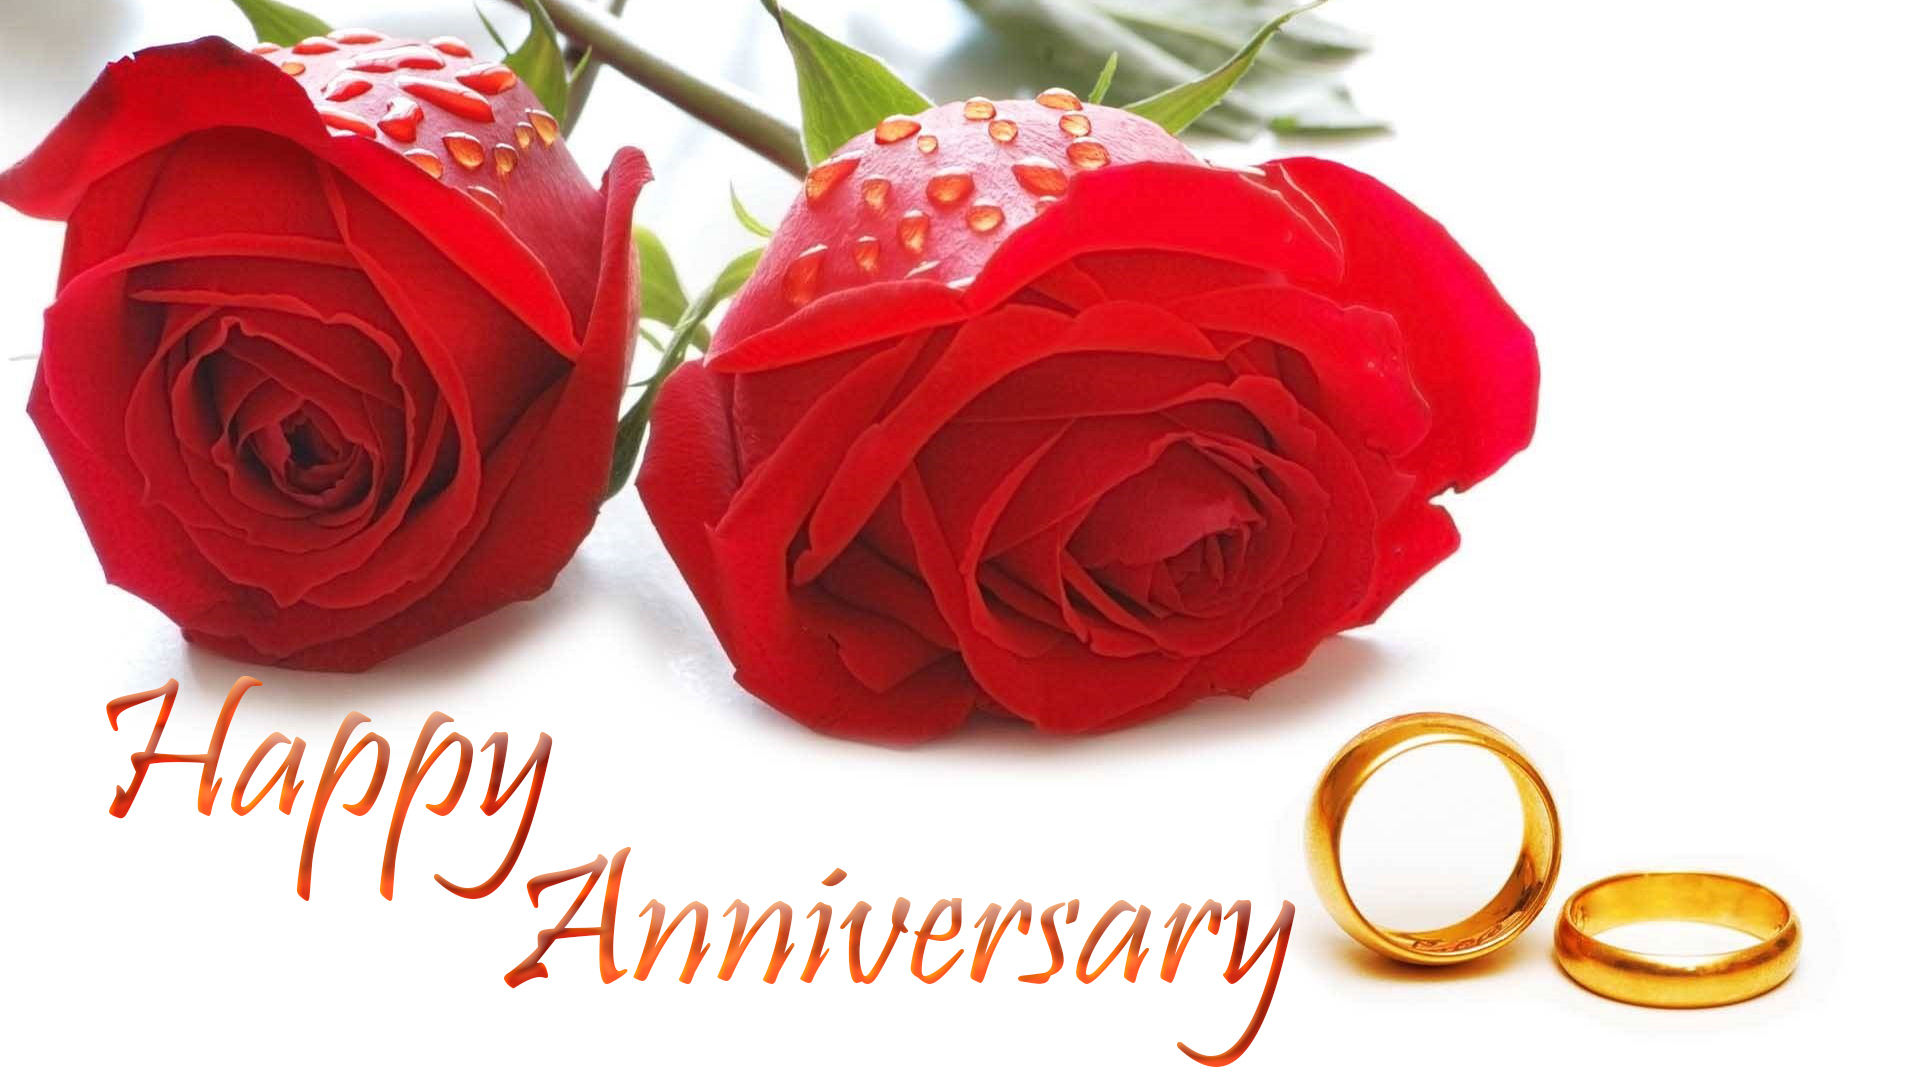 Happy Anniversary Images Pictures Amp Hd Wallpapers